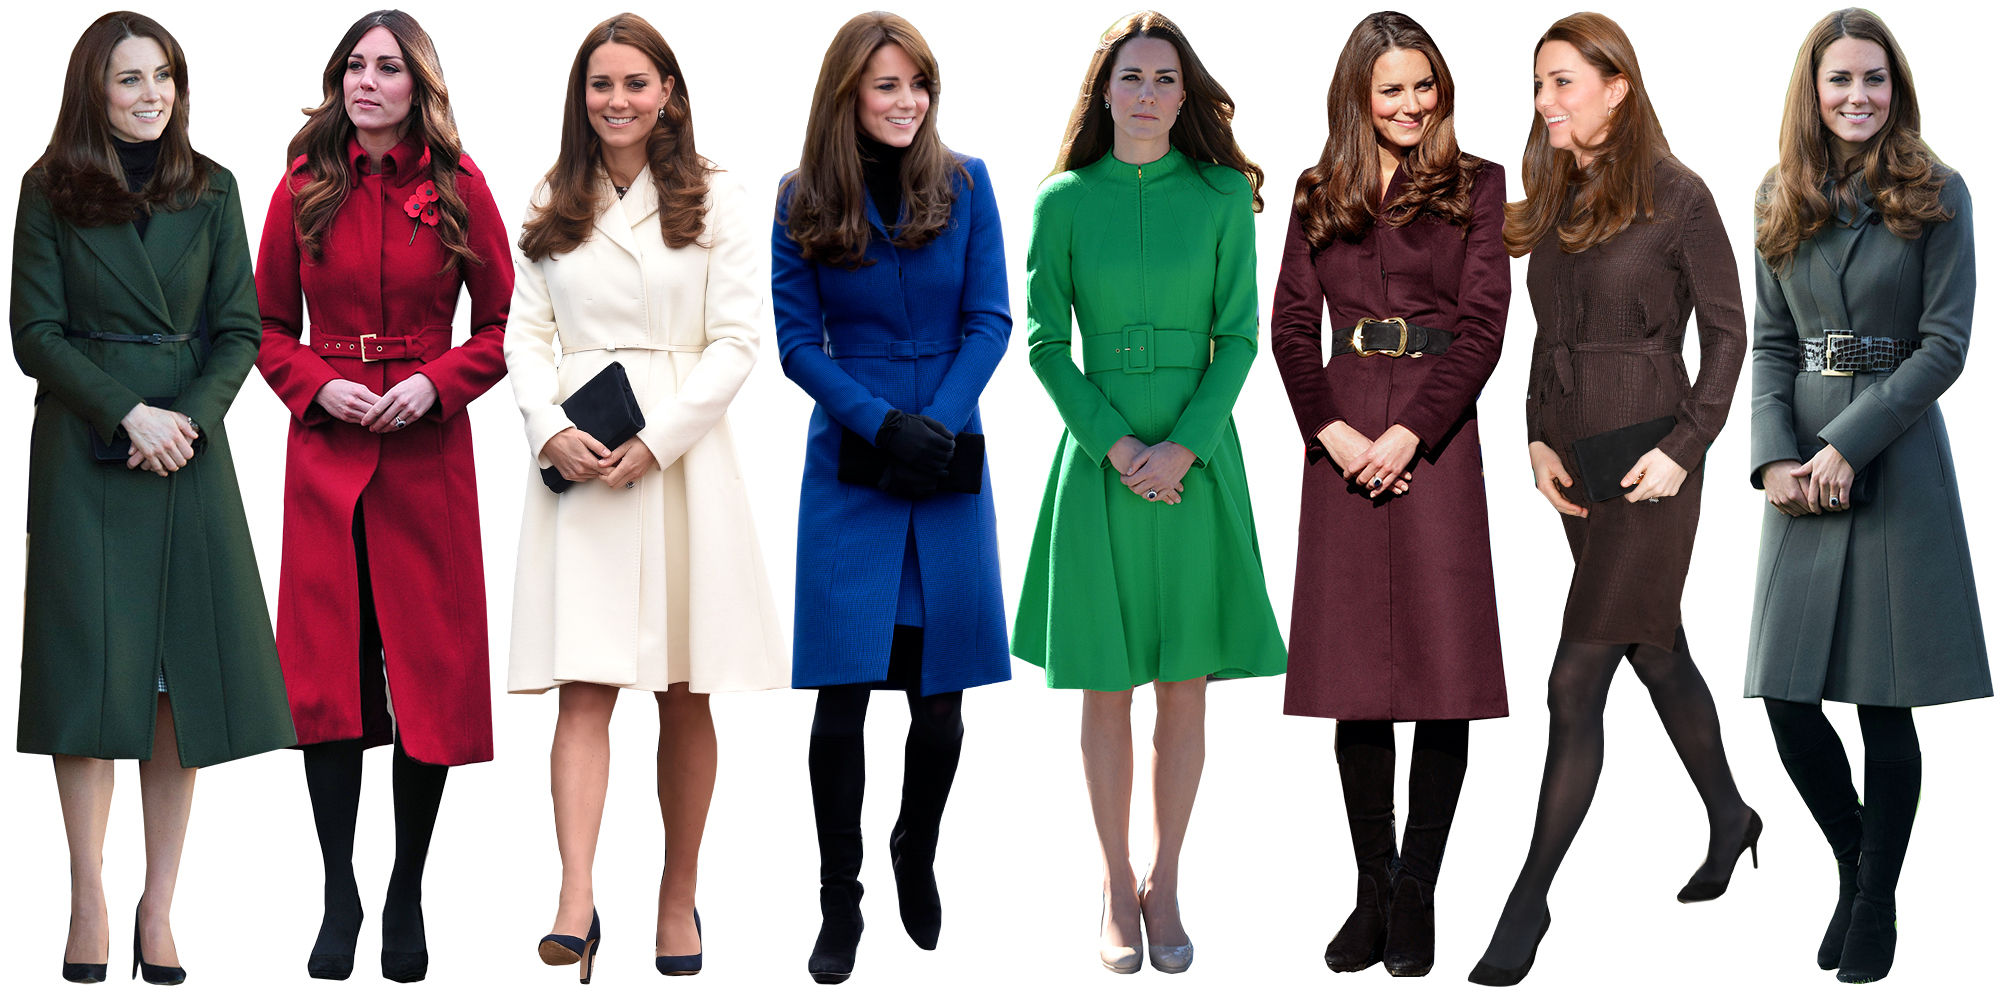 Definitive Proof Kate Middleton Only Wears 7 Things